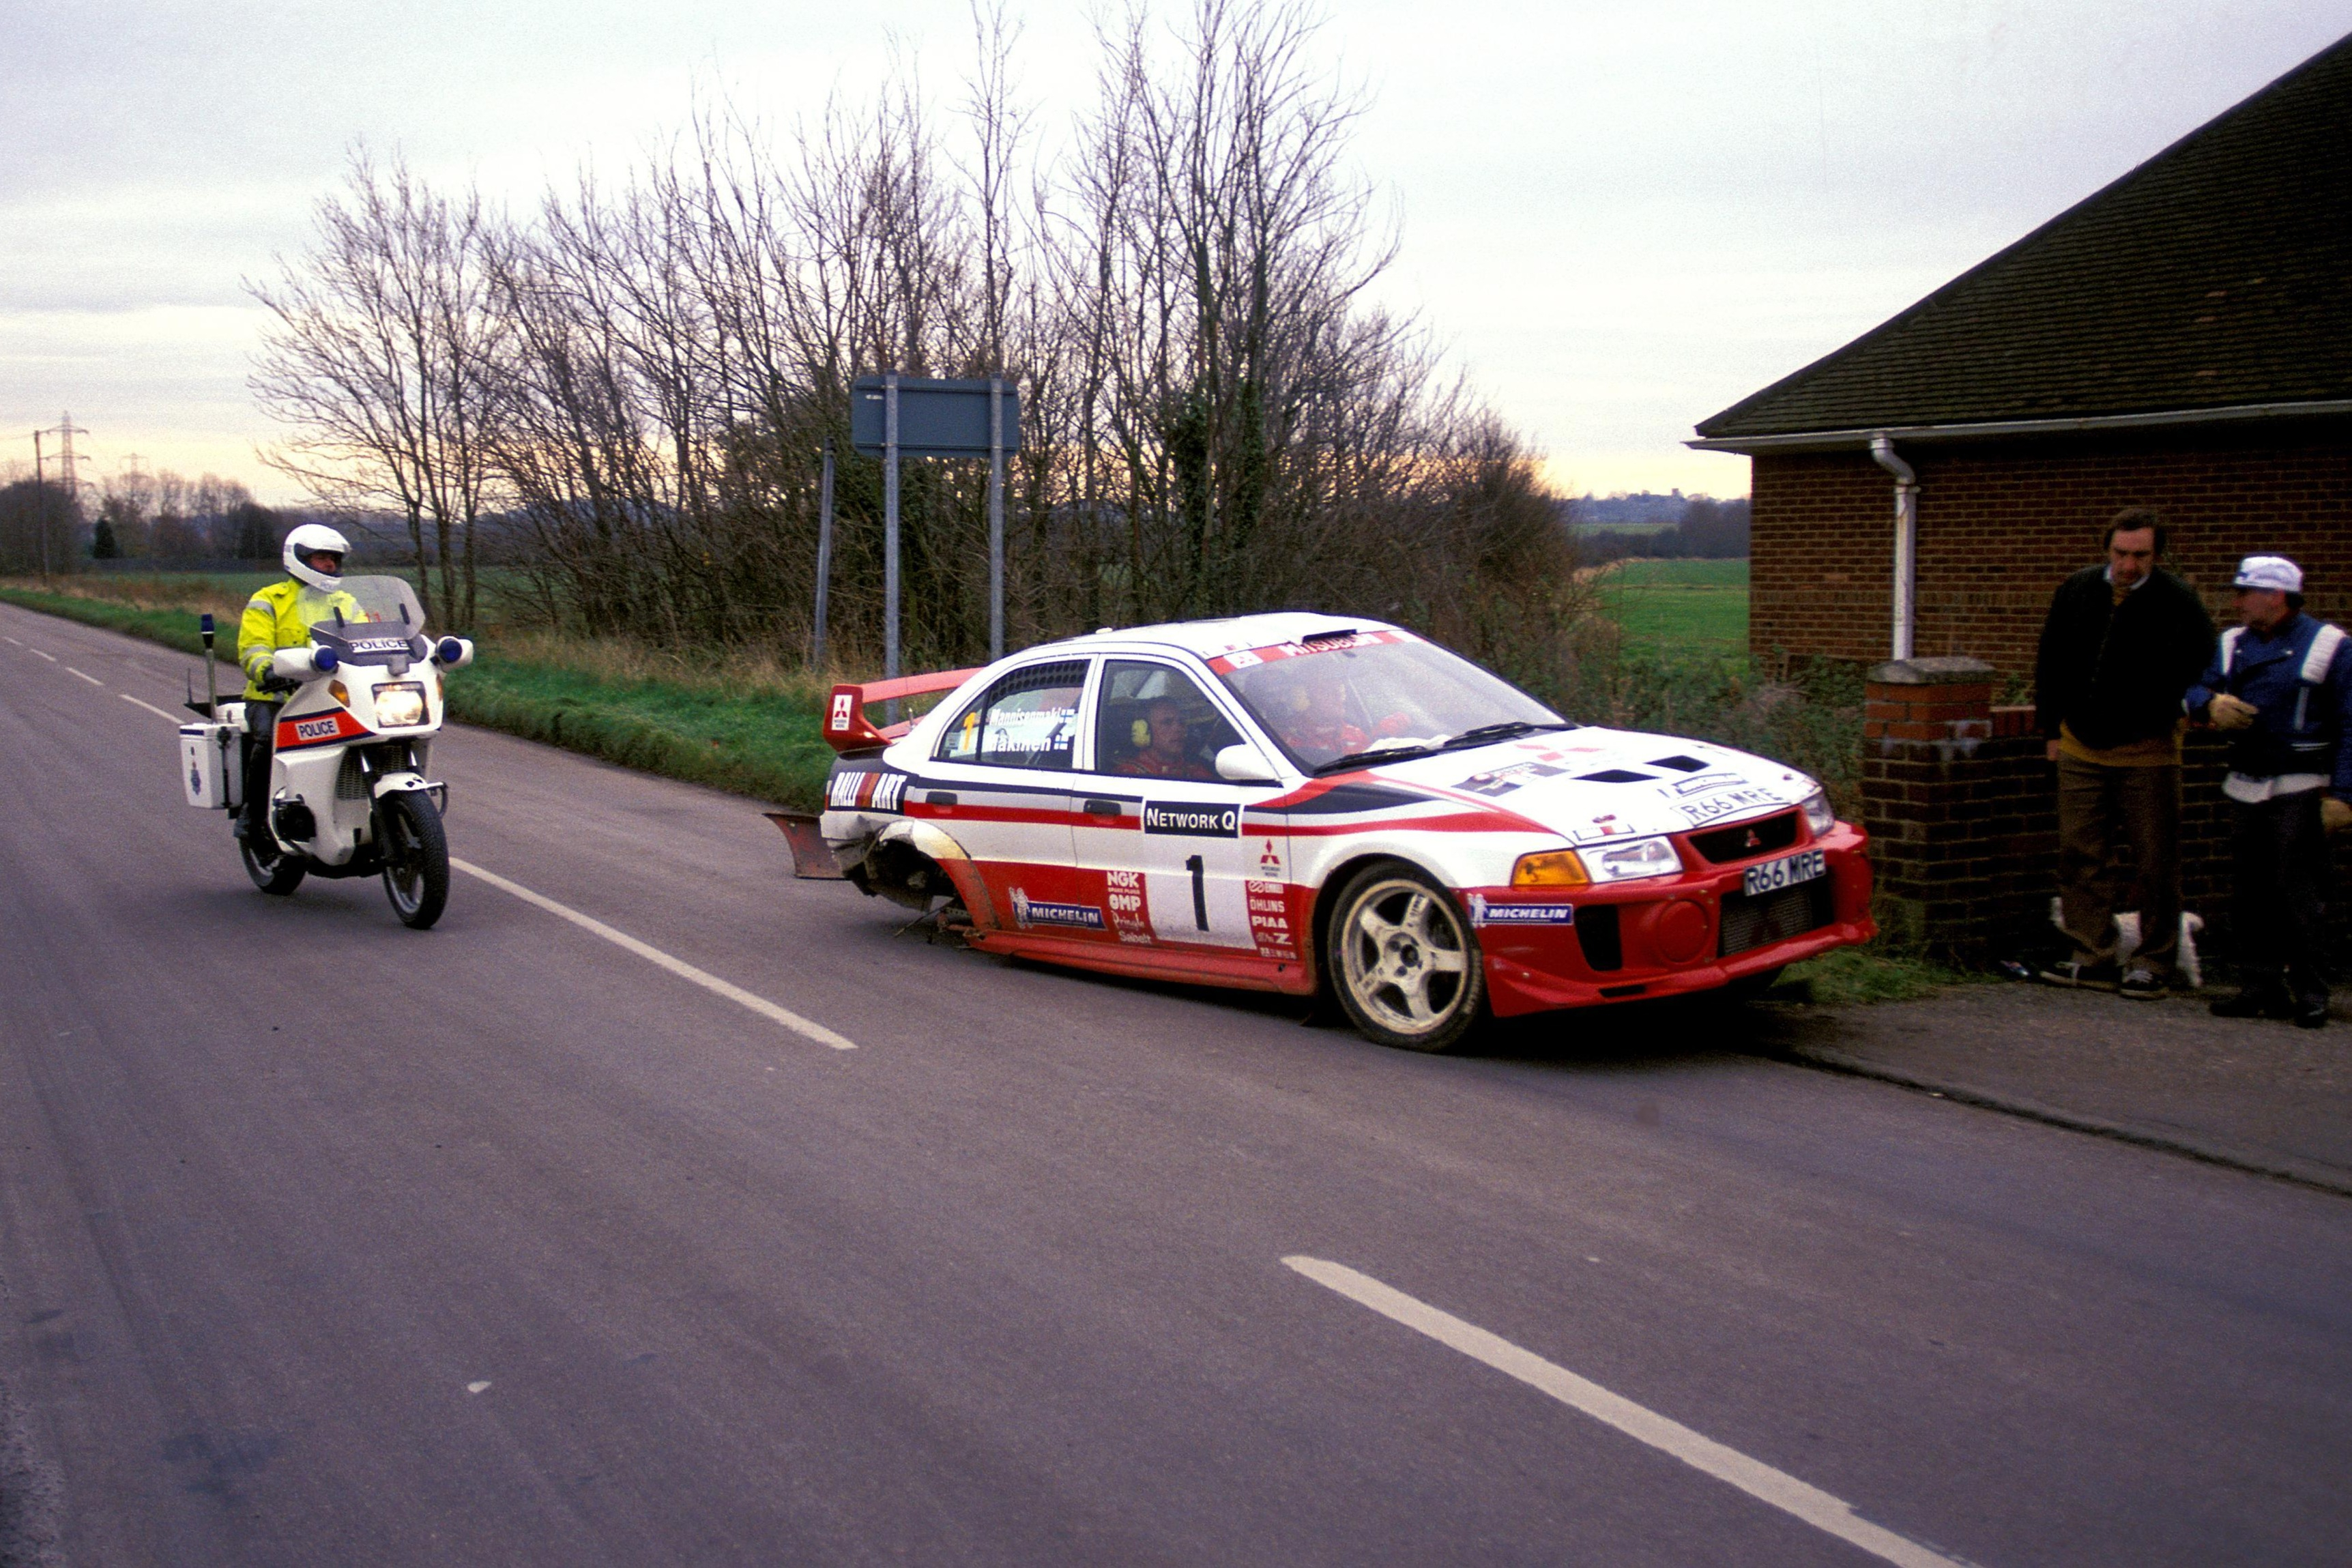 An unconventional way of winning a third world title - Makinen believed he was down and out after losing a wheel and being pulled over by police, only for Toyota engine trouble to deny Sainz